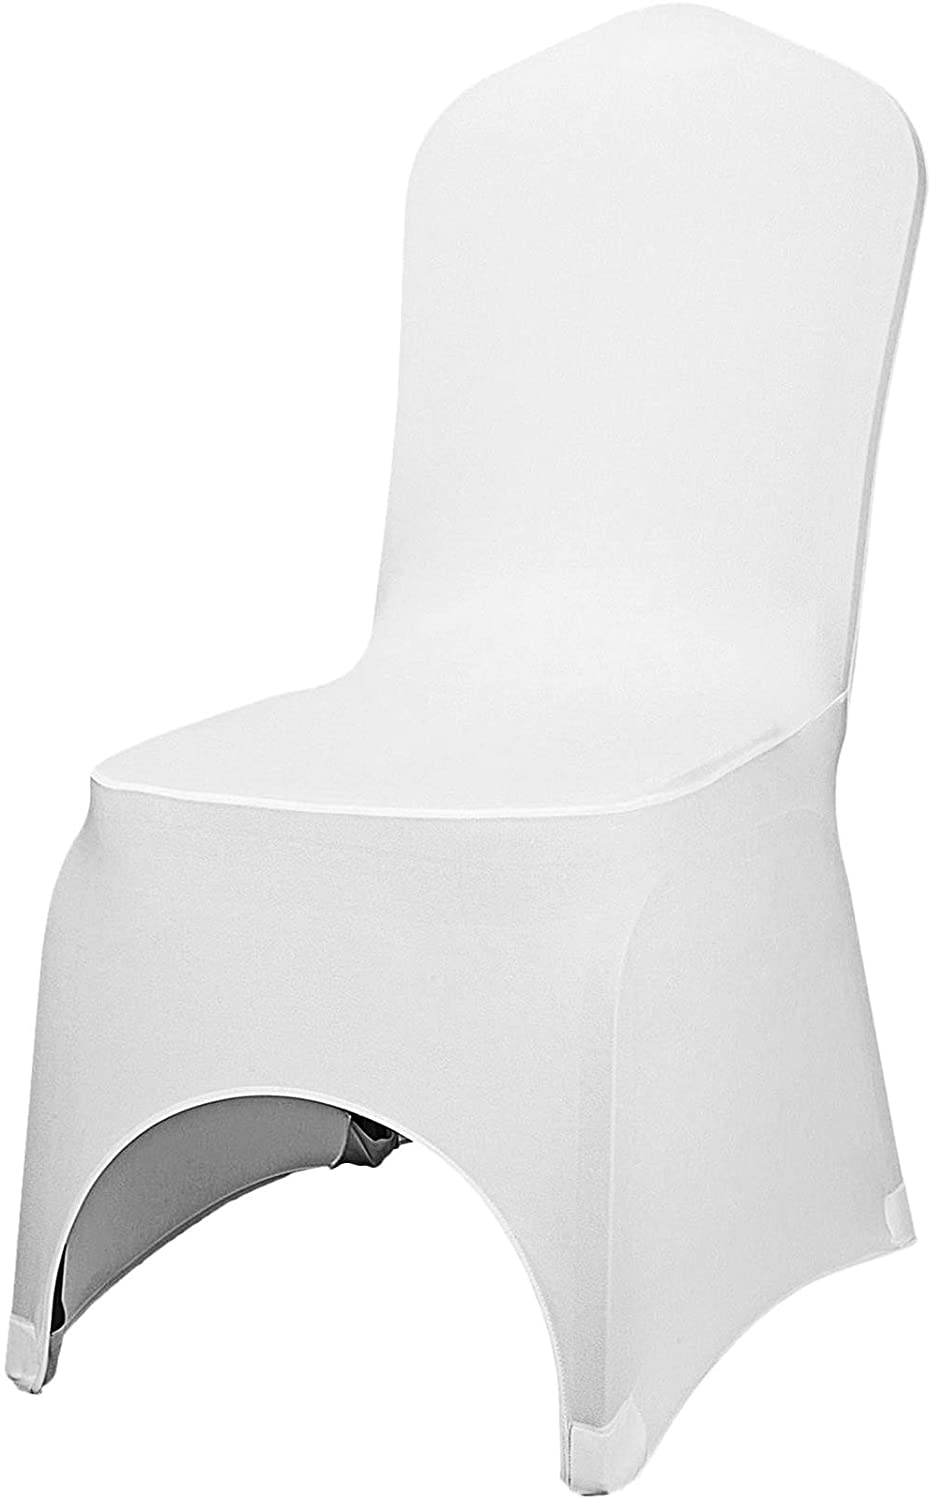 Now free shipping VEVOR 50 Pcs White Chair Spandex 5 ☆ very popular Polyester St Covers Cover